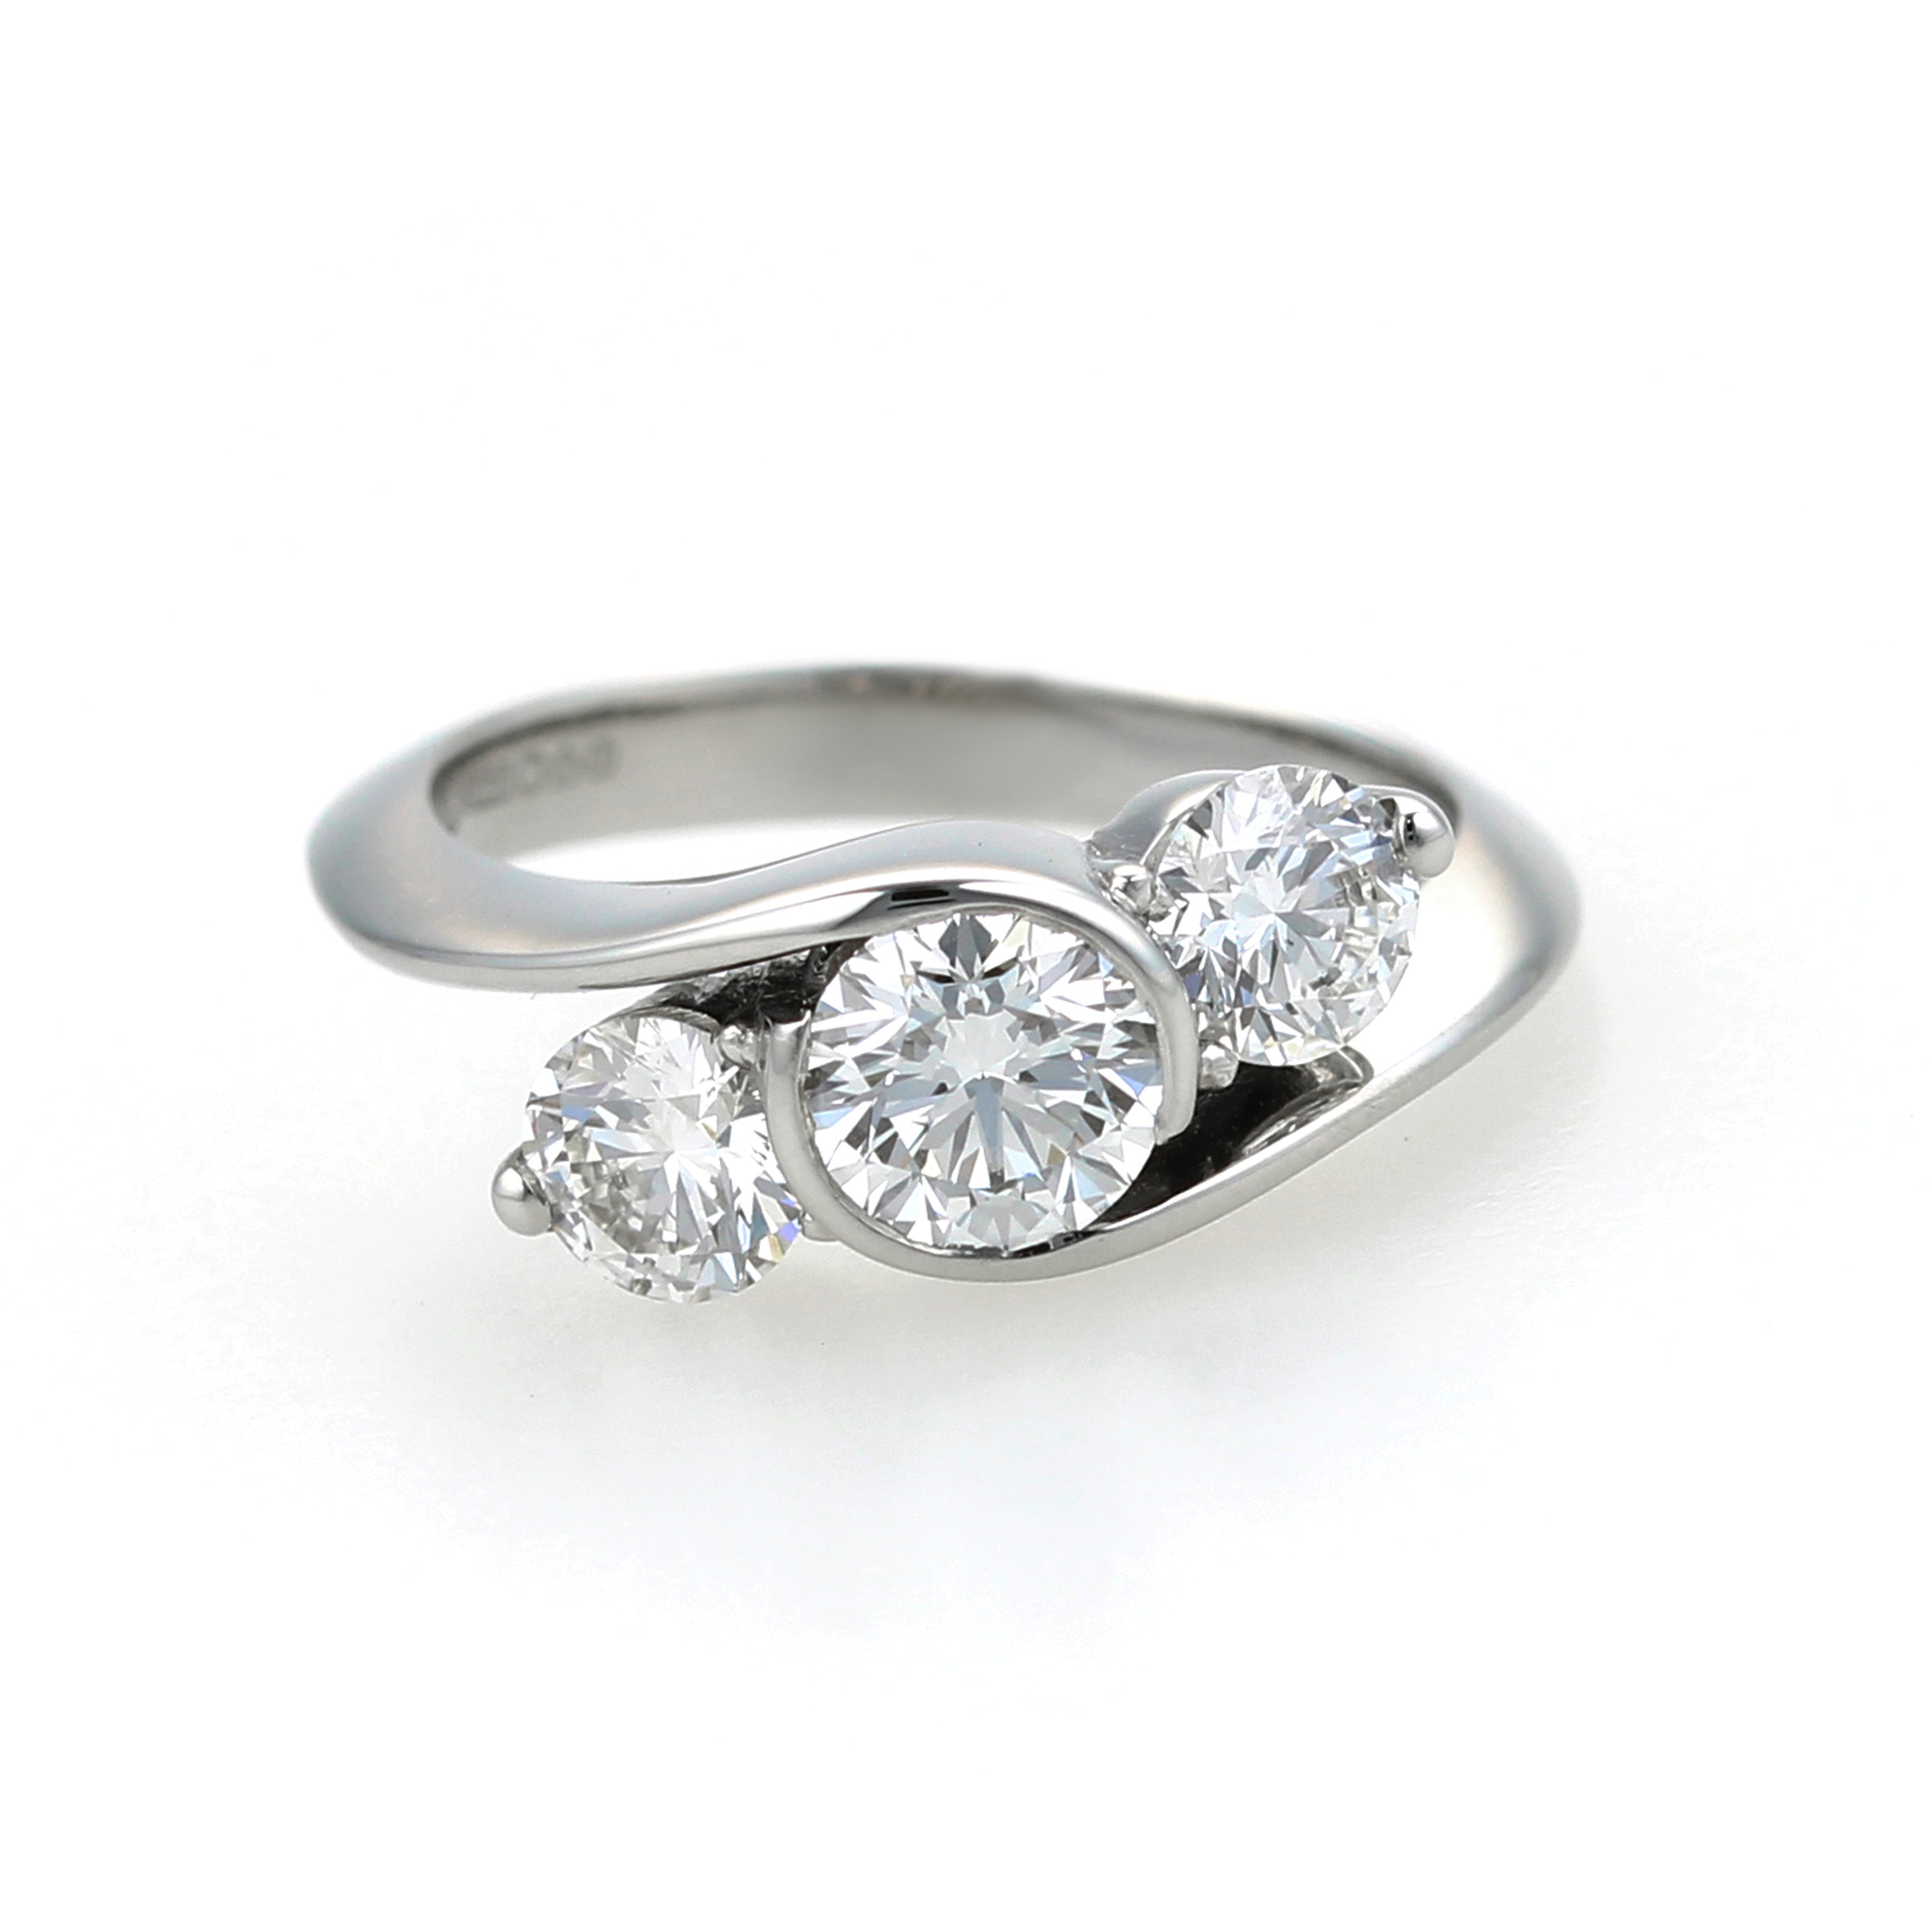 Platinum and diamond handmade engagement ring 2